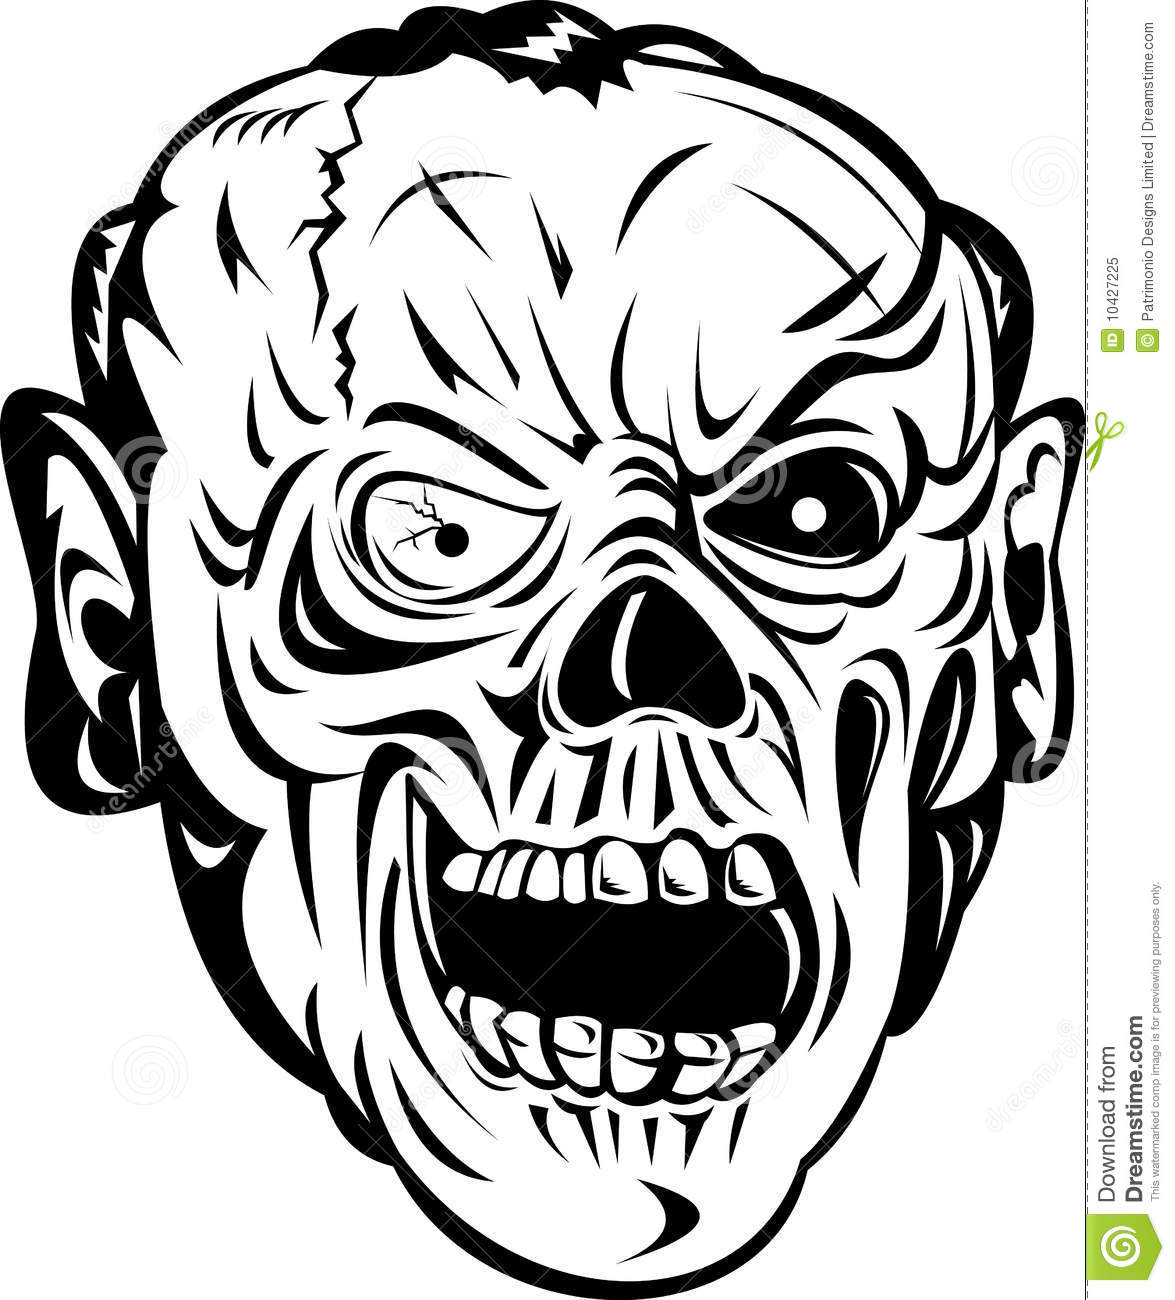 Zombie Face Line Drawing : Zombie skull bone face royalty free stock photo image